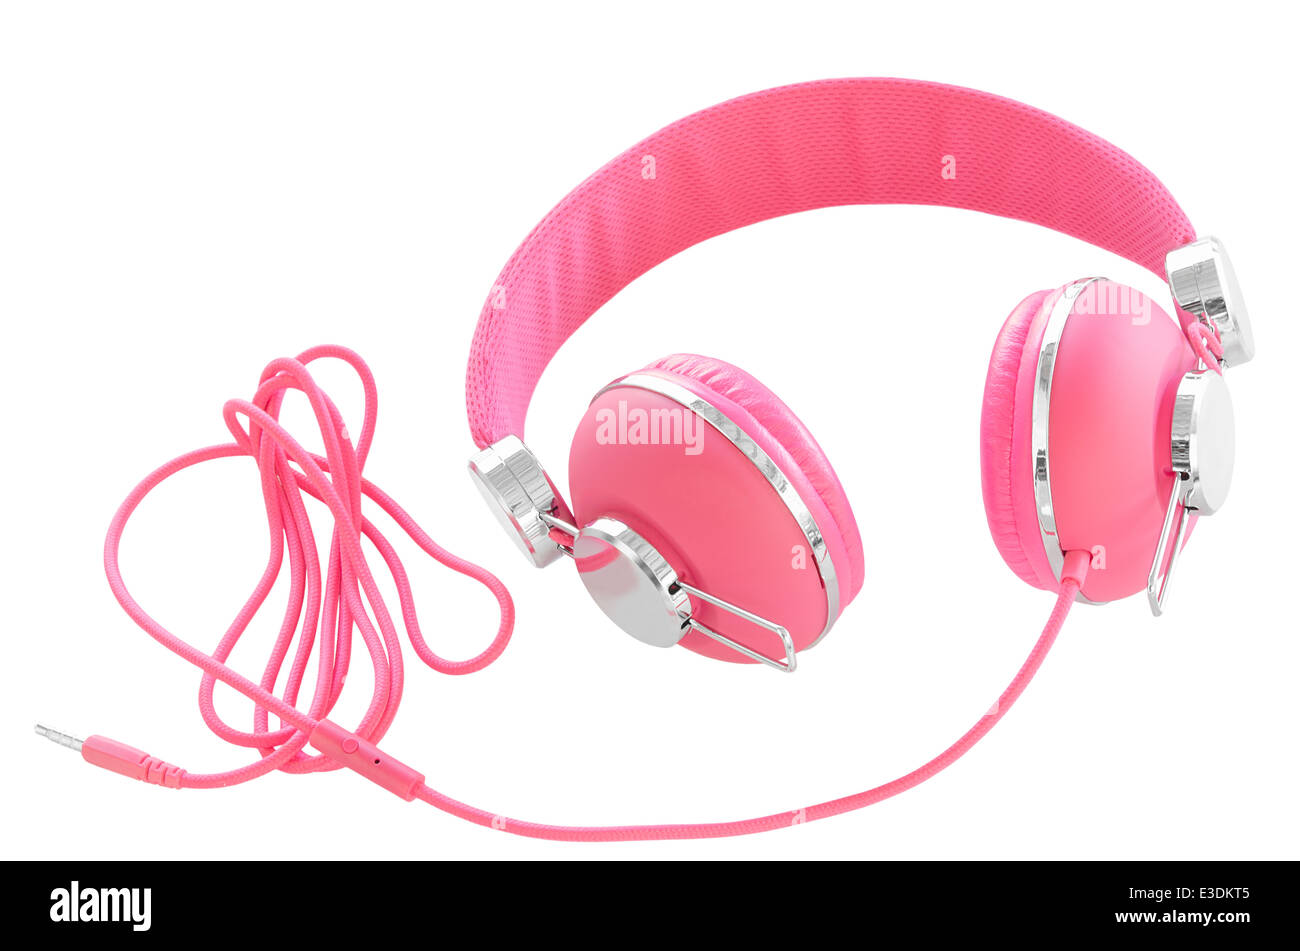 Femme de couleur rose pastel headphones isolated on white Photo Stock